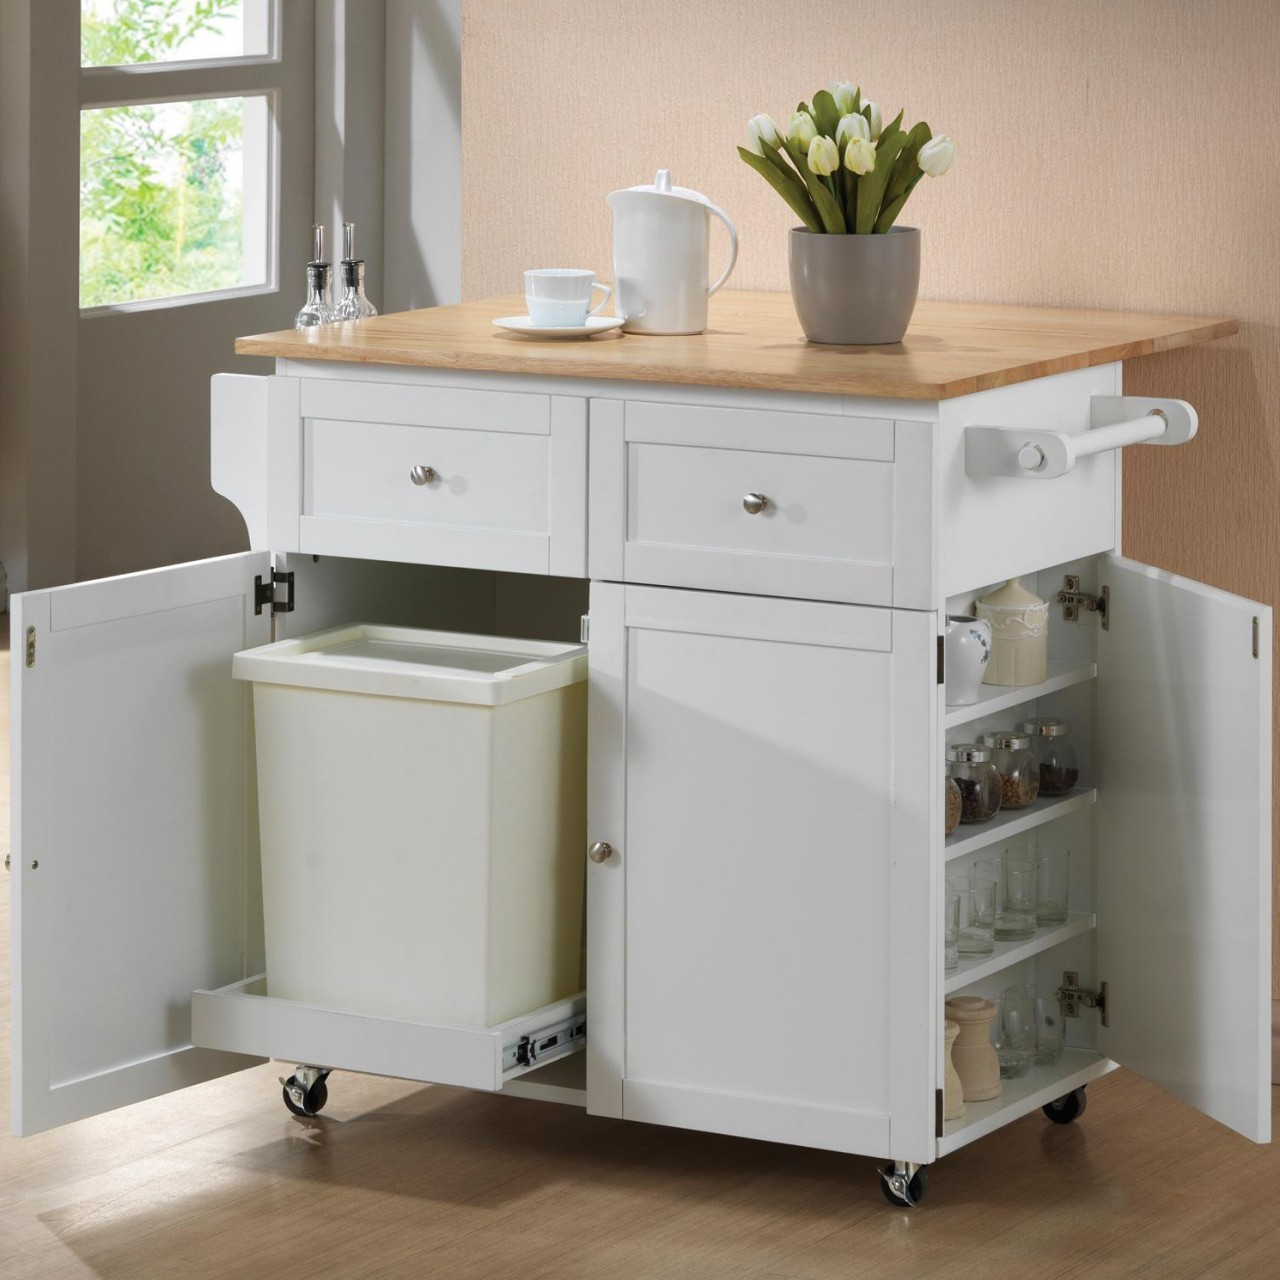 Outstanding Kitchen Cart with Trash Can 1280 x 1280 · 202 kB · jpeg